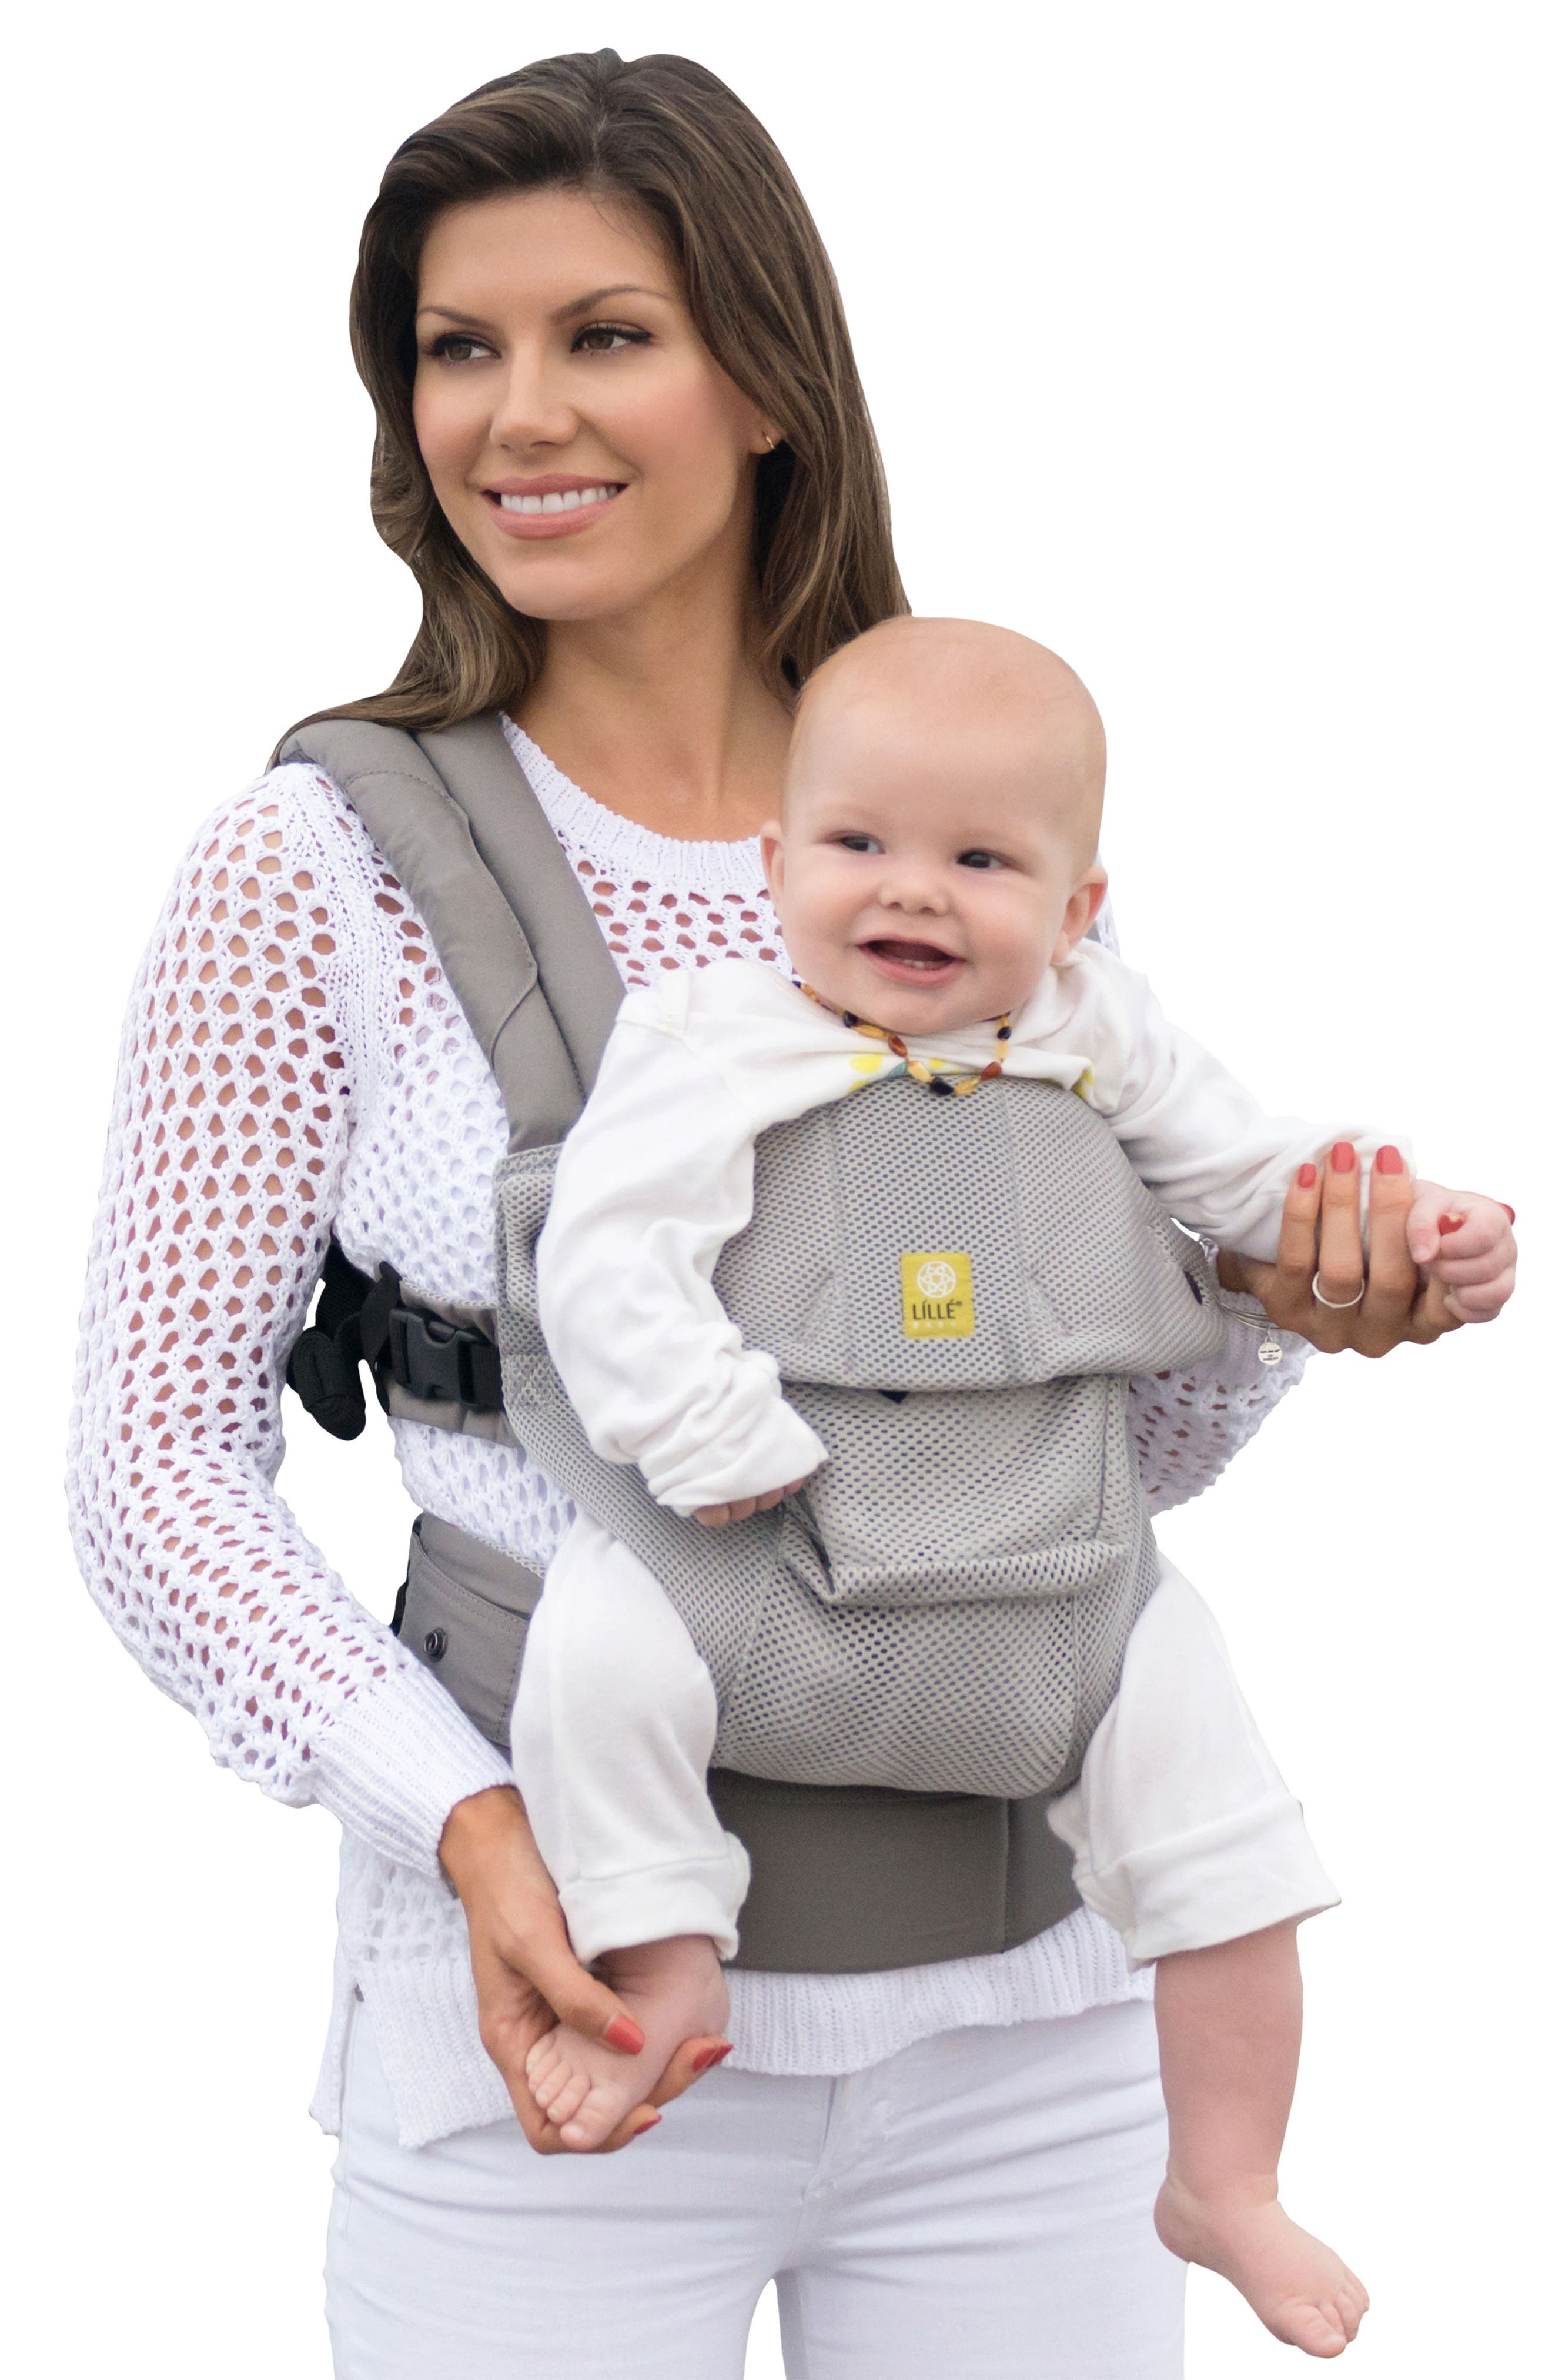 'Airflow' Baby Carrier,                             Main thumbnail 1, color,                             GREY MIST